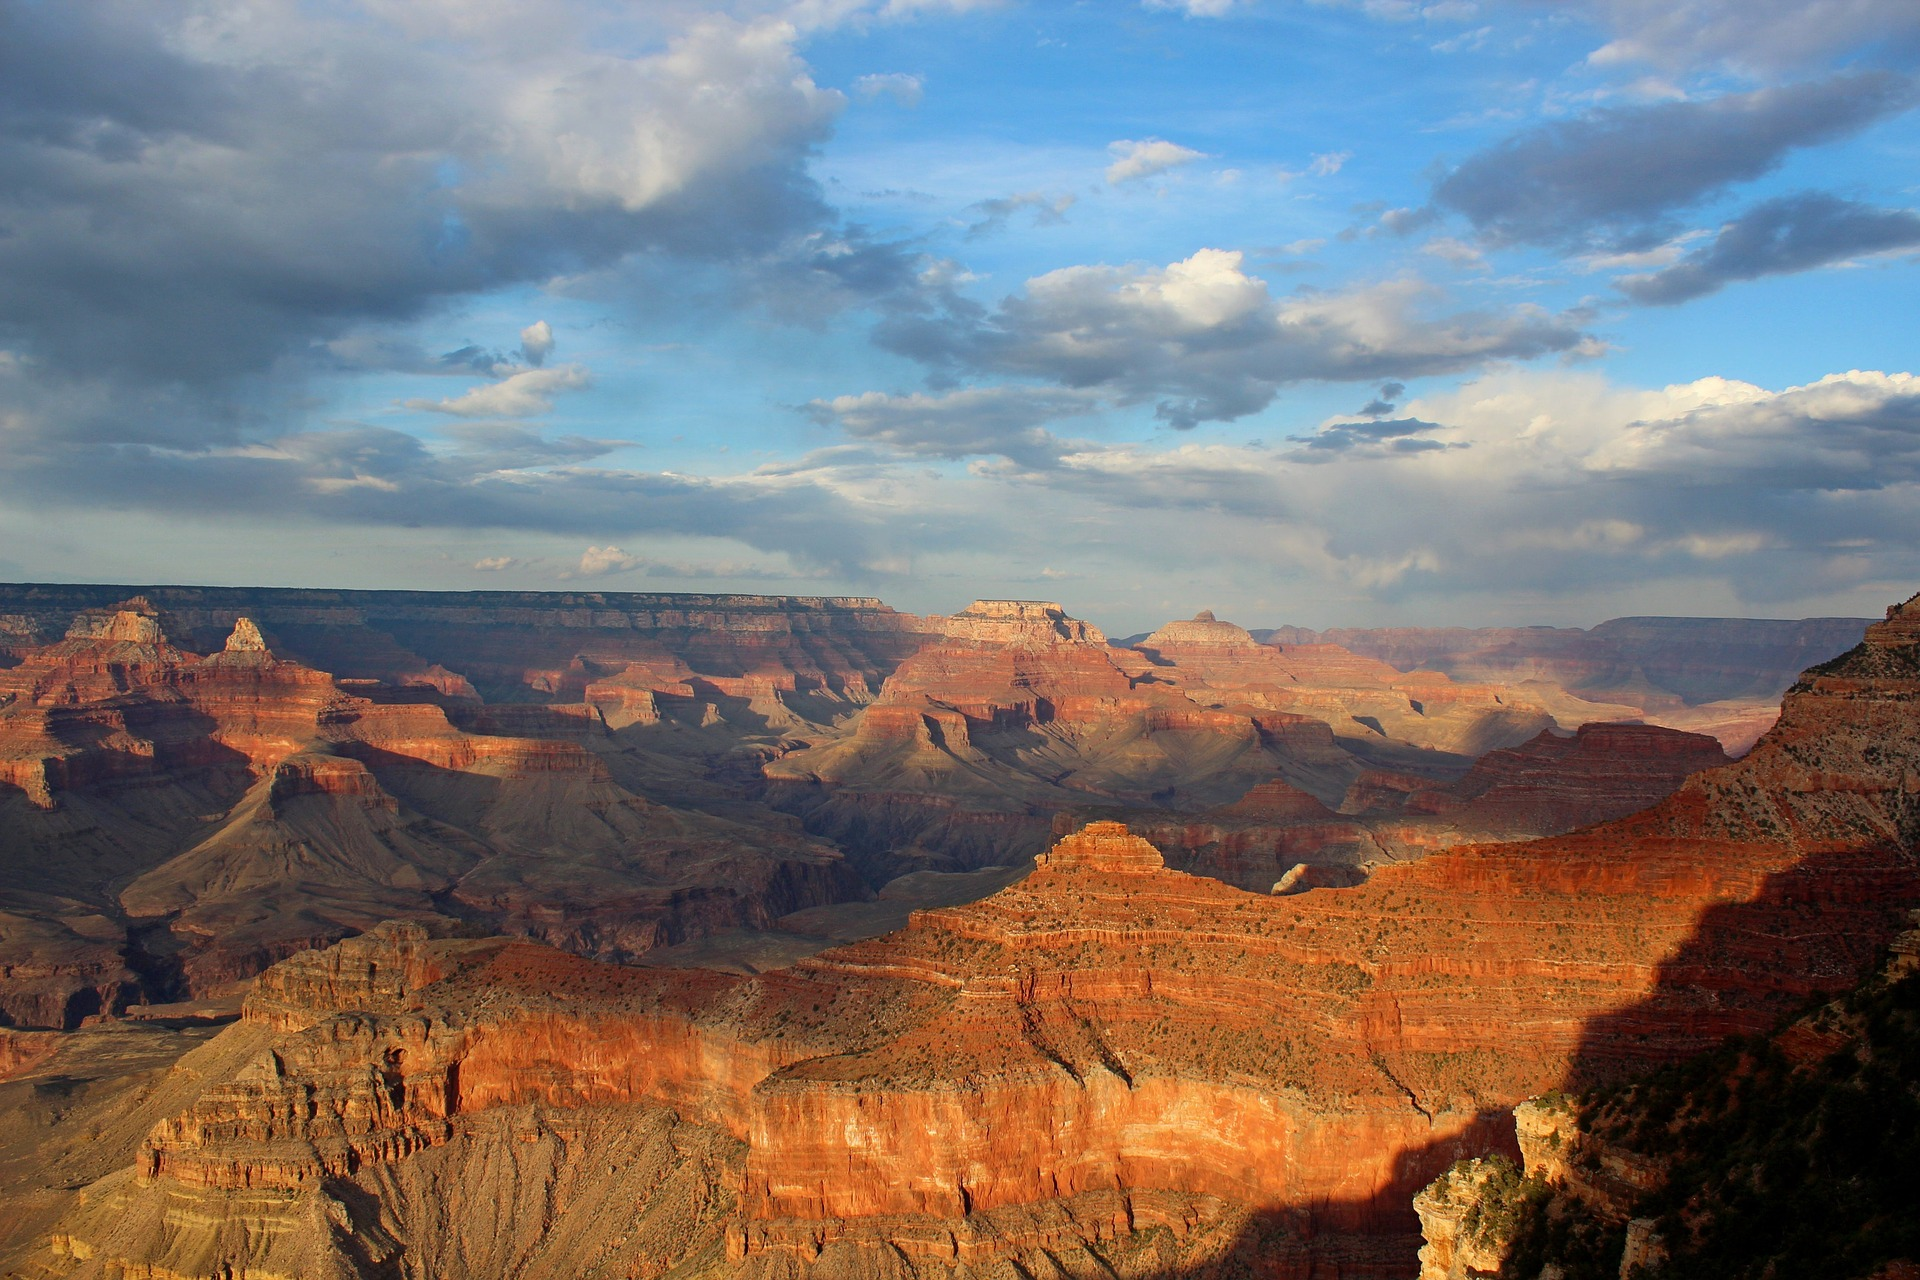 Best of the Canyonlands | Grand Canyon National Park, Arizona, USA